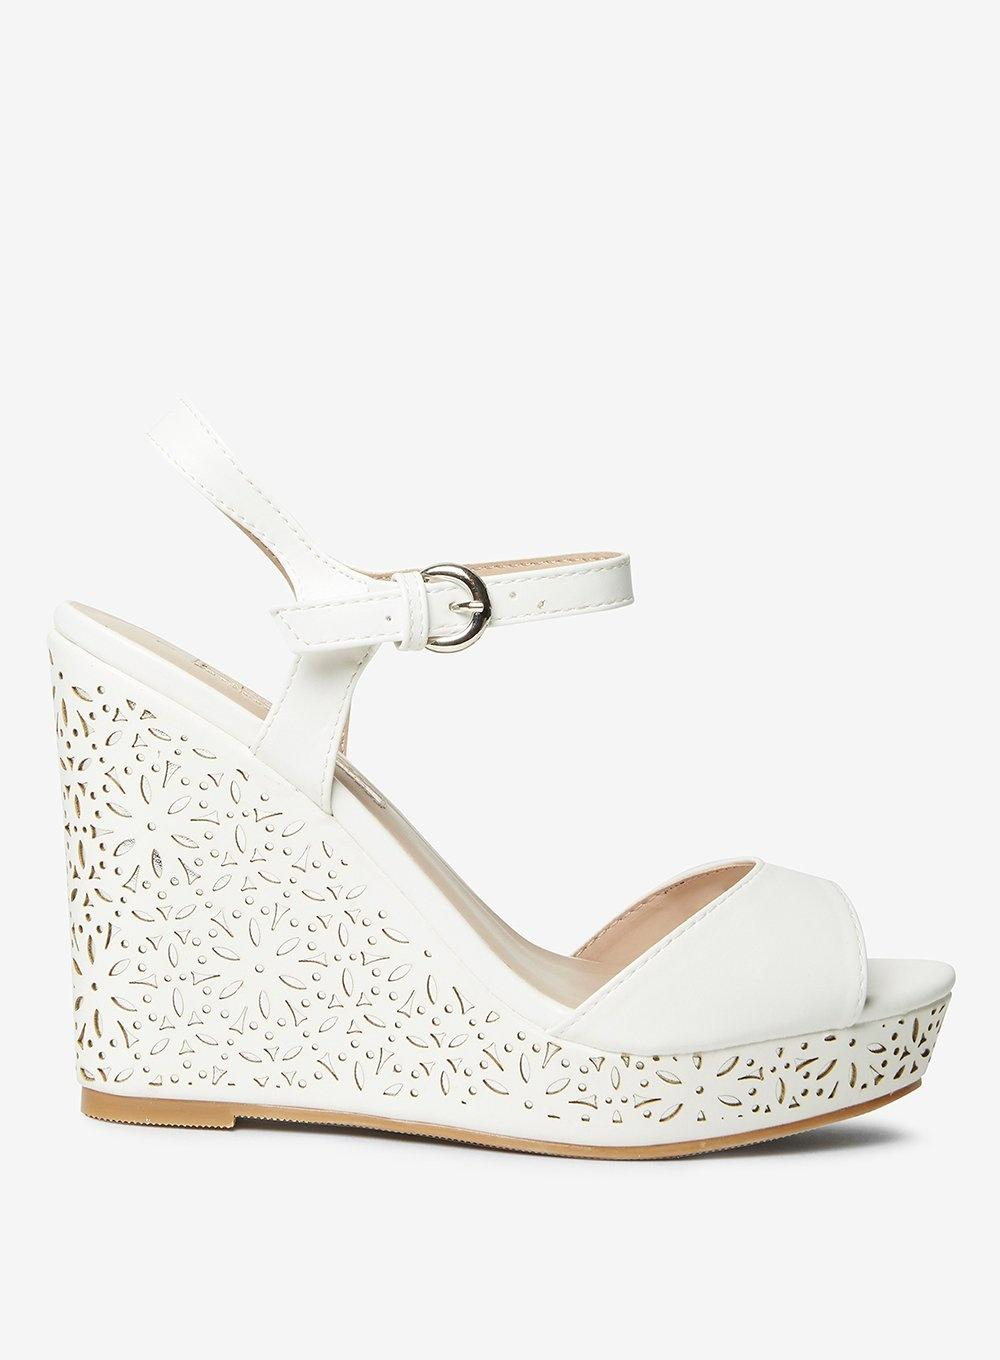 bcc3c75d69cae1 Dorothy Perkins White  rayne  Lazer Cut Wedges in White - Lyst